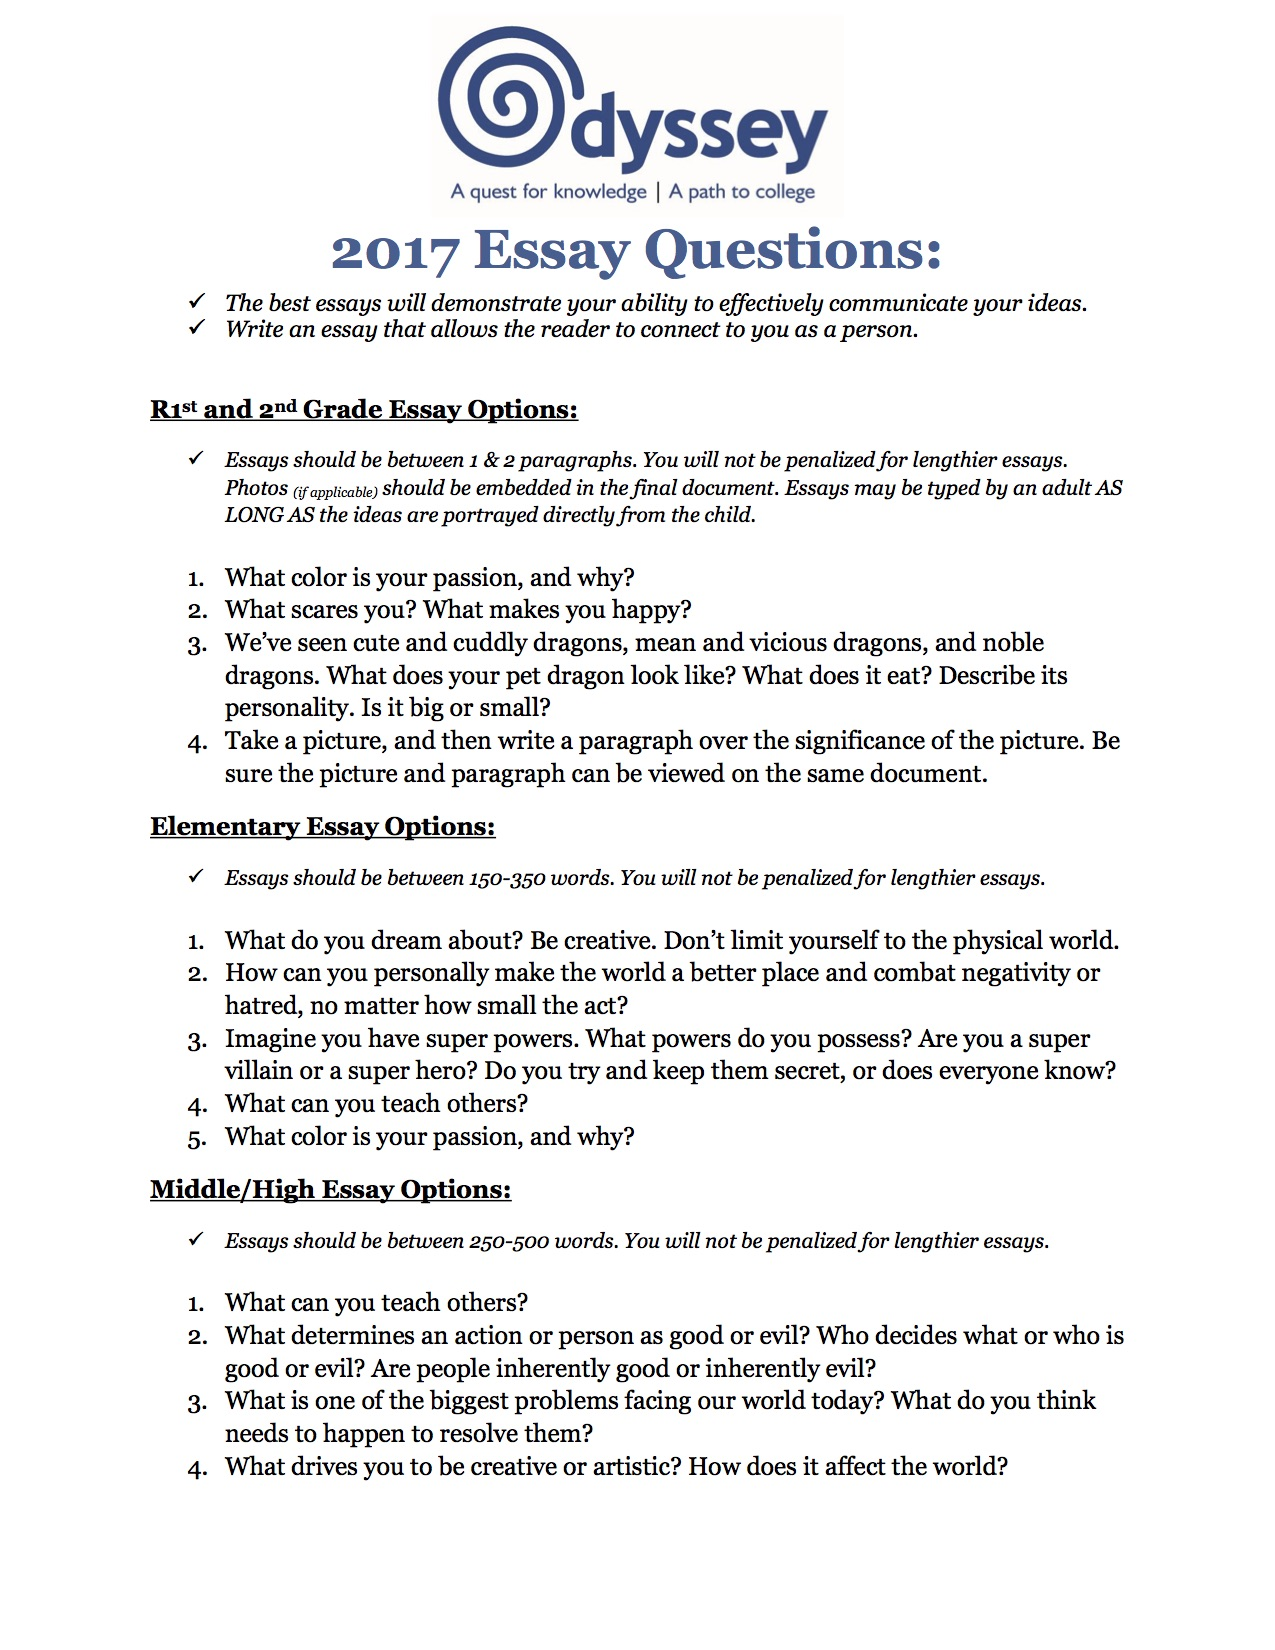 university of arizona application essay prompt Home · about · degrees & programs · campus life · admissions · financial aid · future students chat now chat offline give to erau · ernie · embry-riddle home menu apply today · request info · embry-riddle aeronautical university - prescott, arizona · apply today request info future students chat now chat.